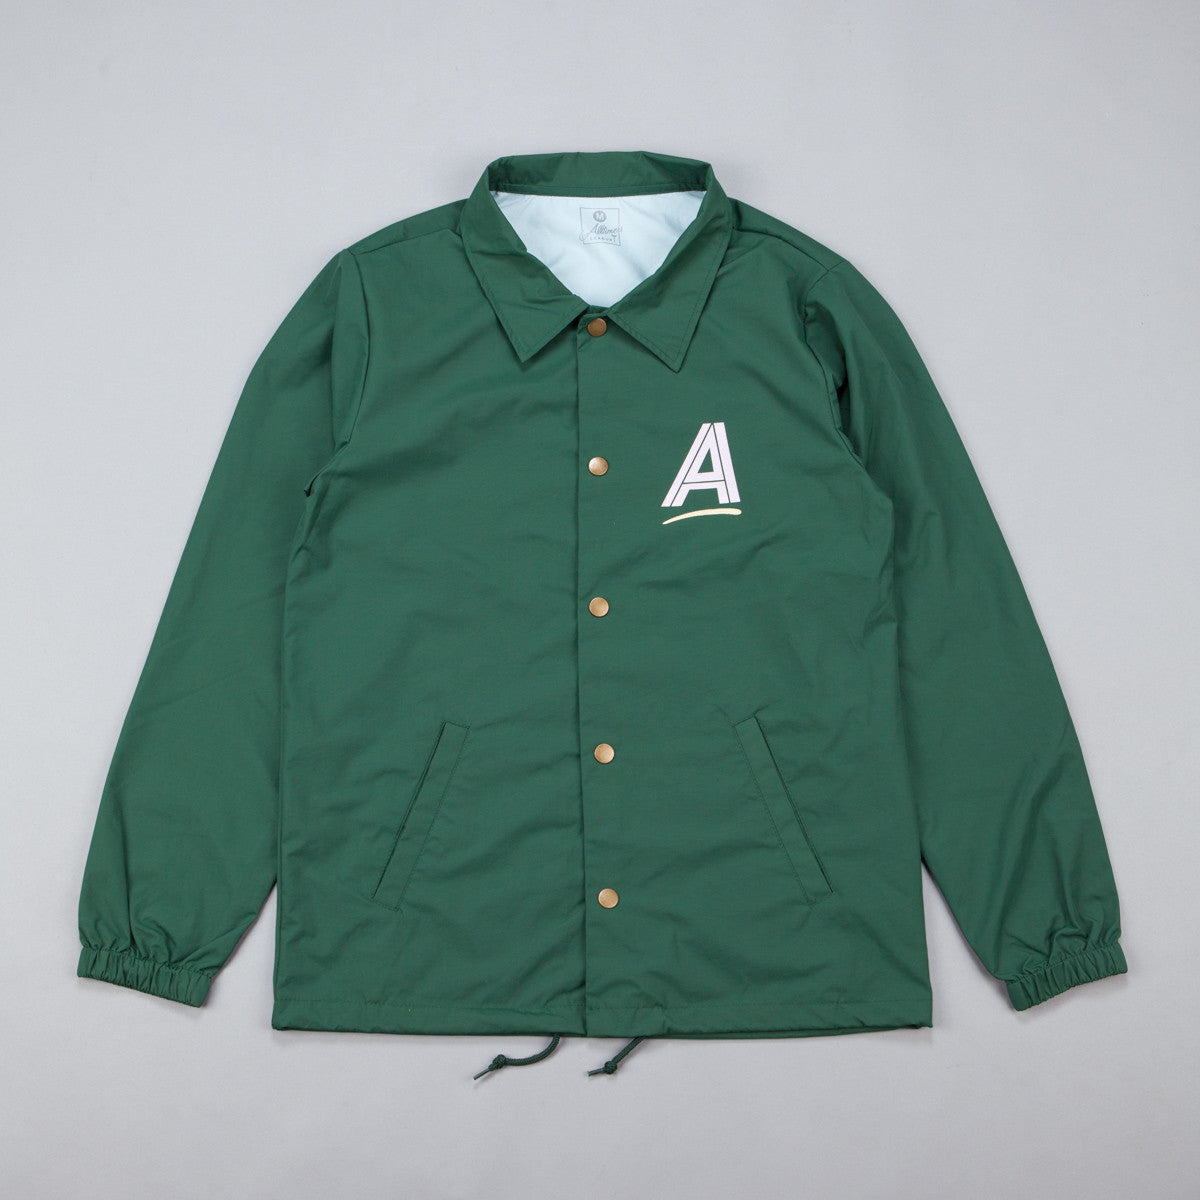 Alltimers Sears Coaches Jacket